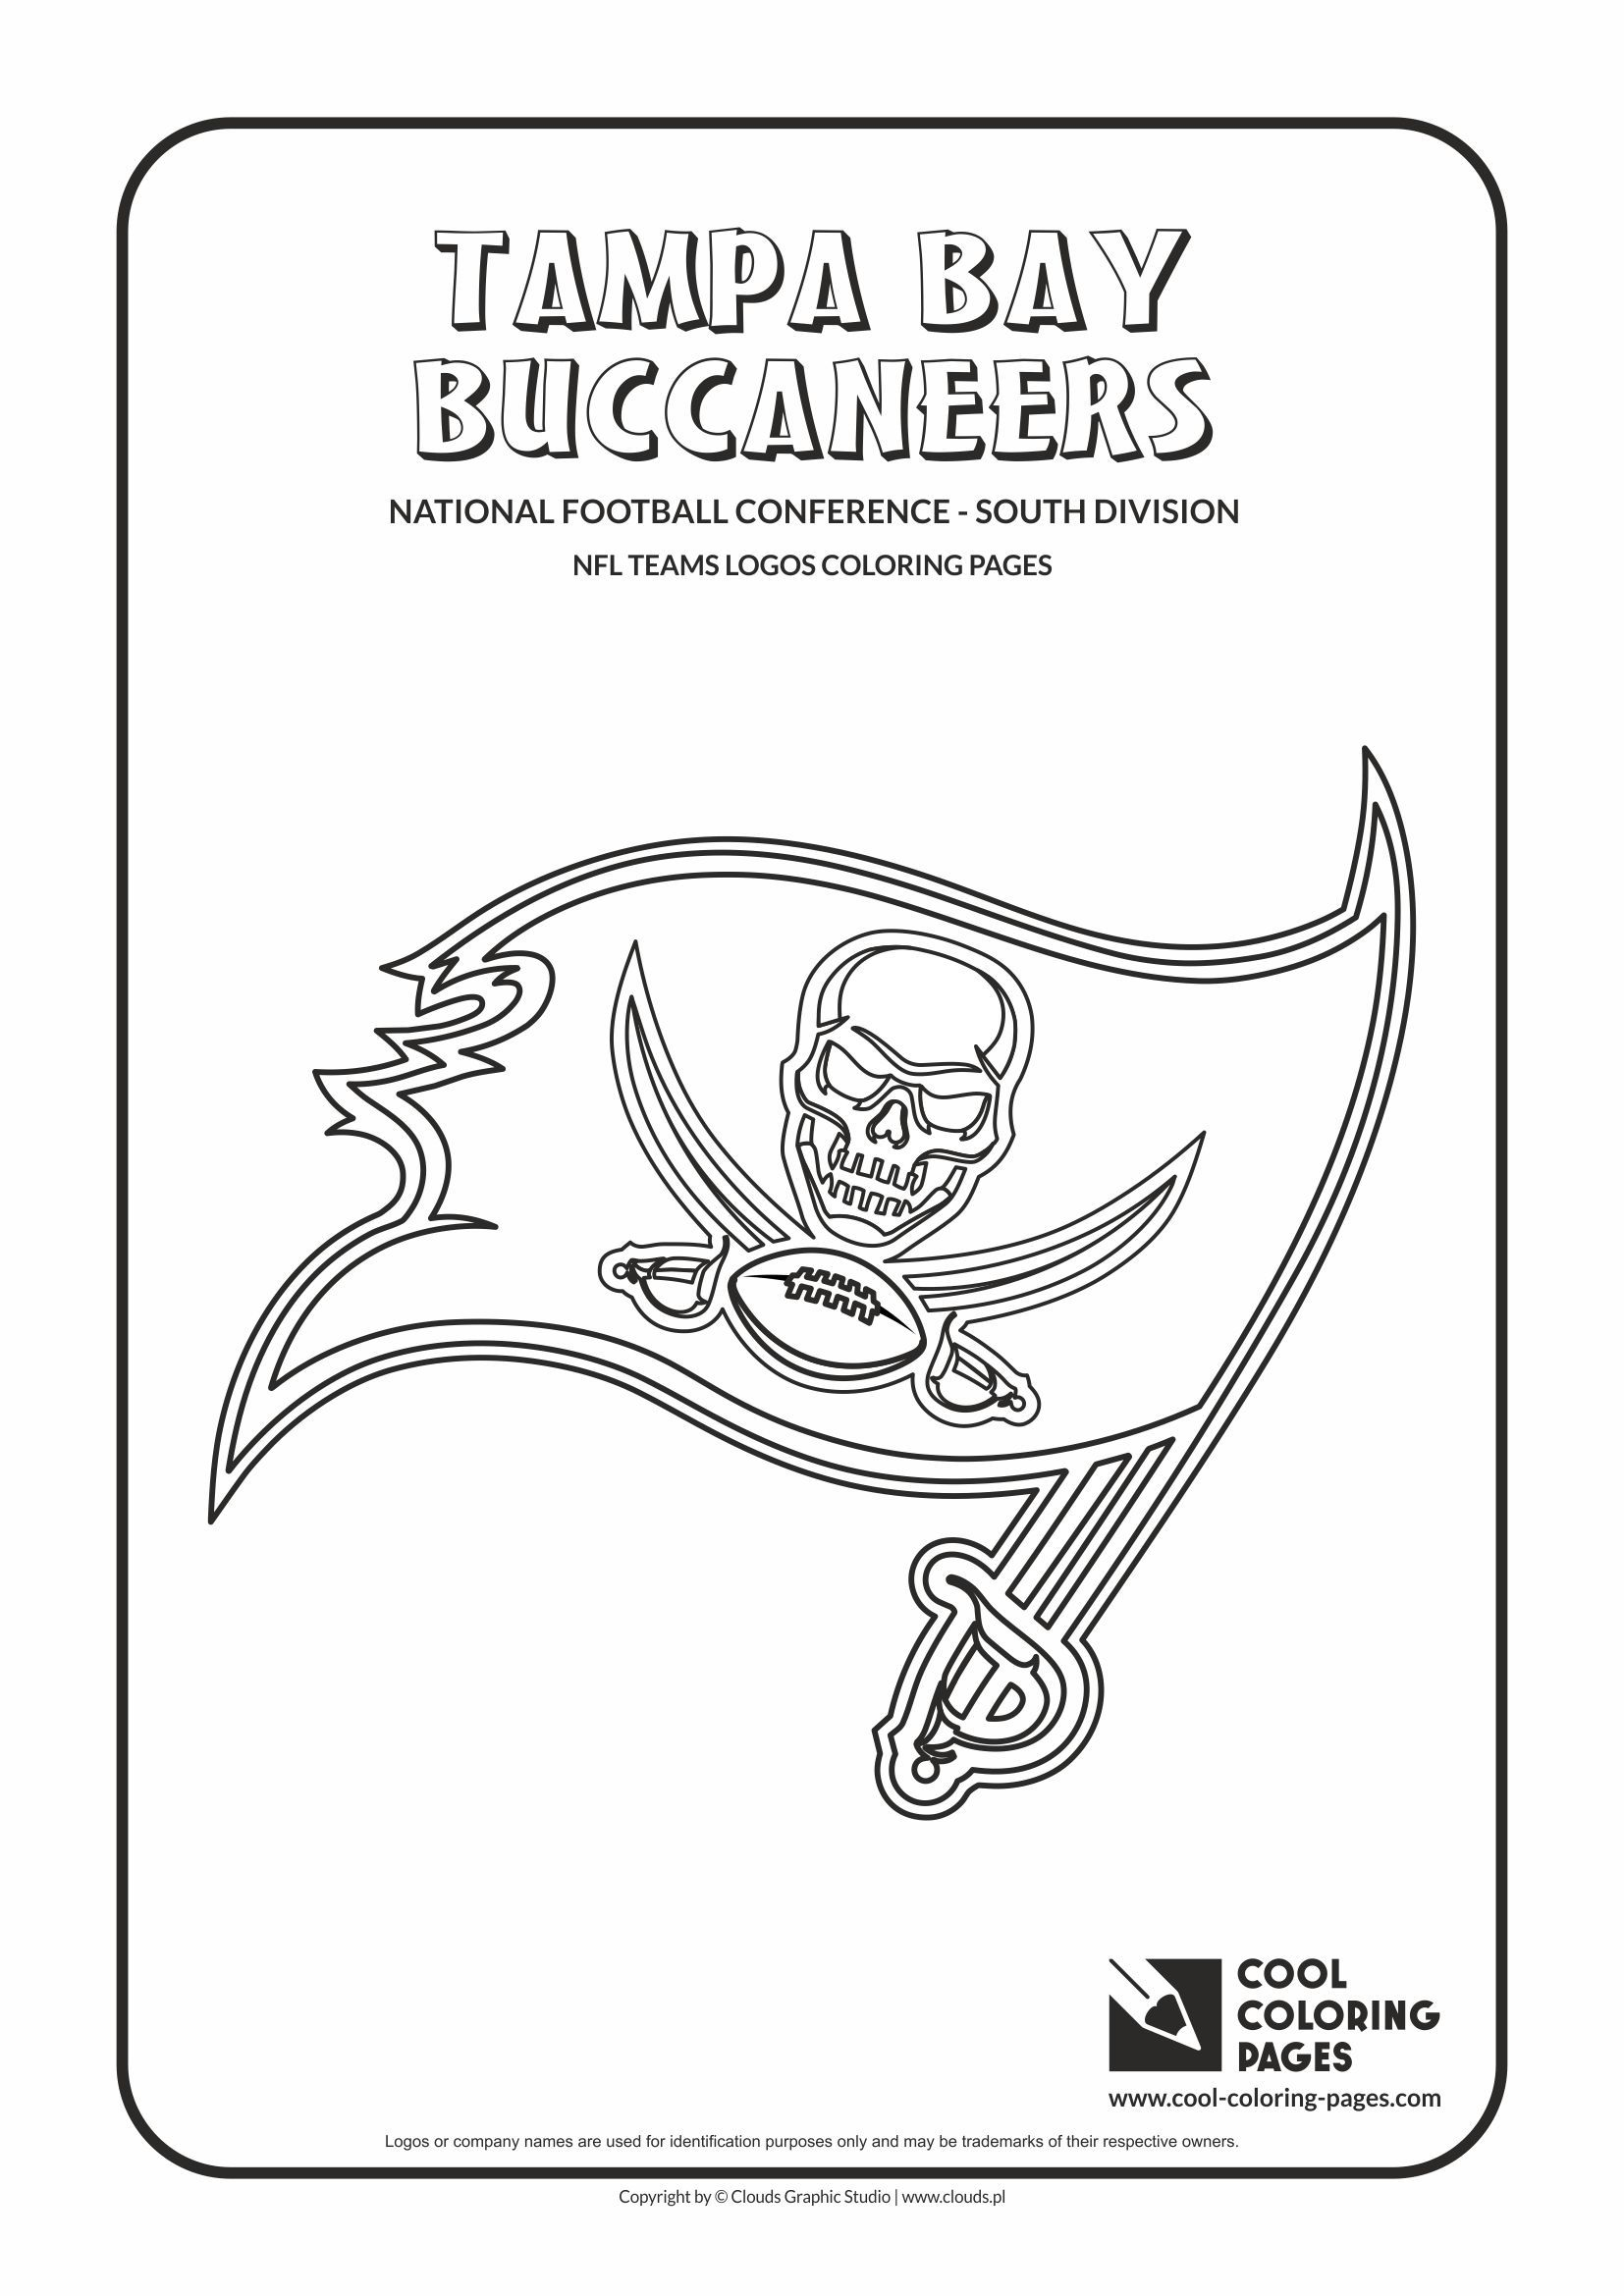 Cool Coloring Pages Nfl American Football Clubs Logos National Football Conference South Division Football Coloring Pages Nfl Logo Cool Coloring Pages